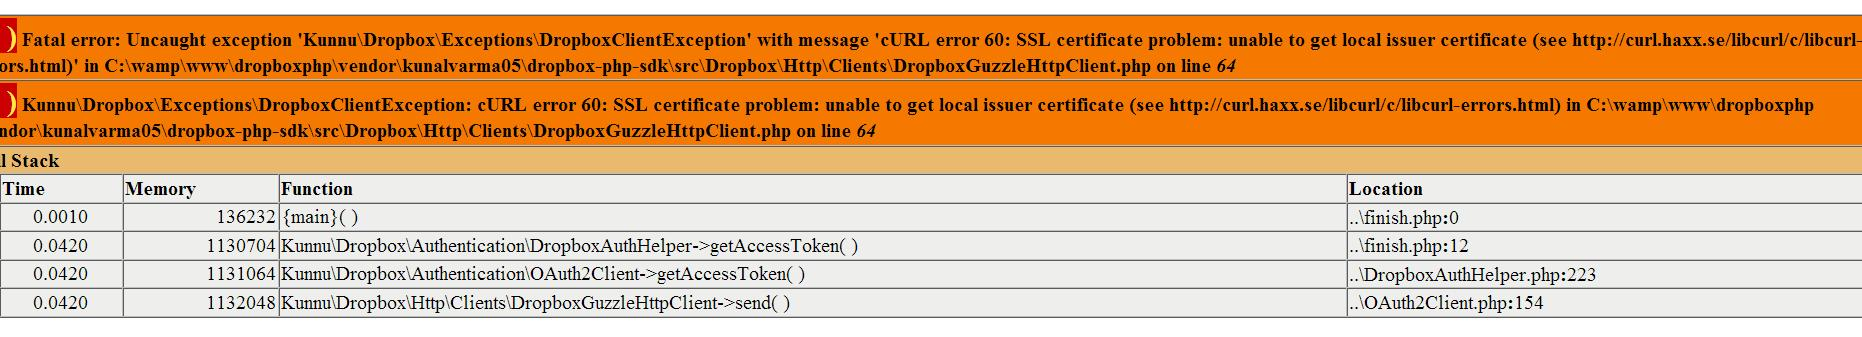 Php Curl Ssl Certificate Images - certificate of completion